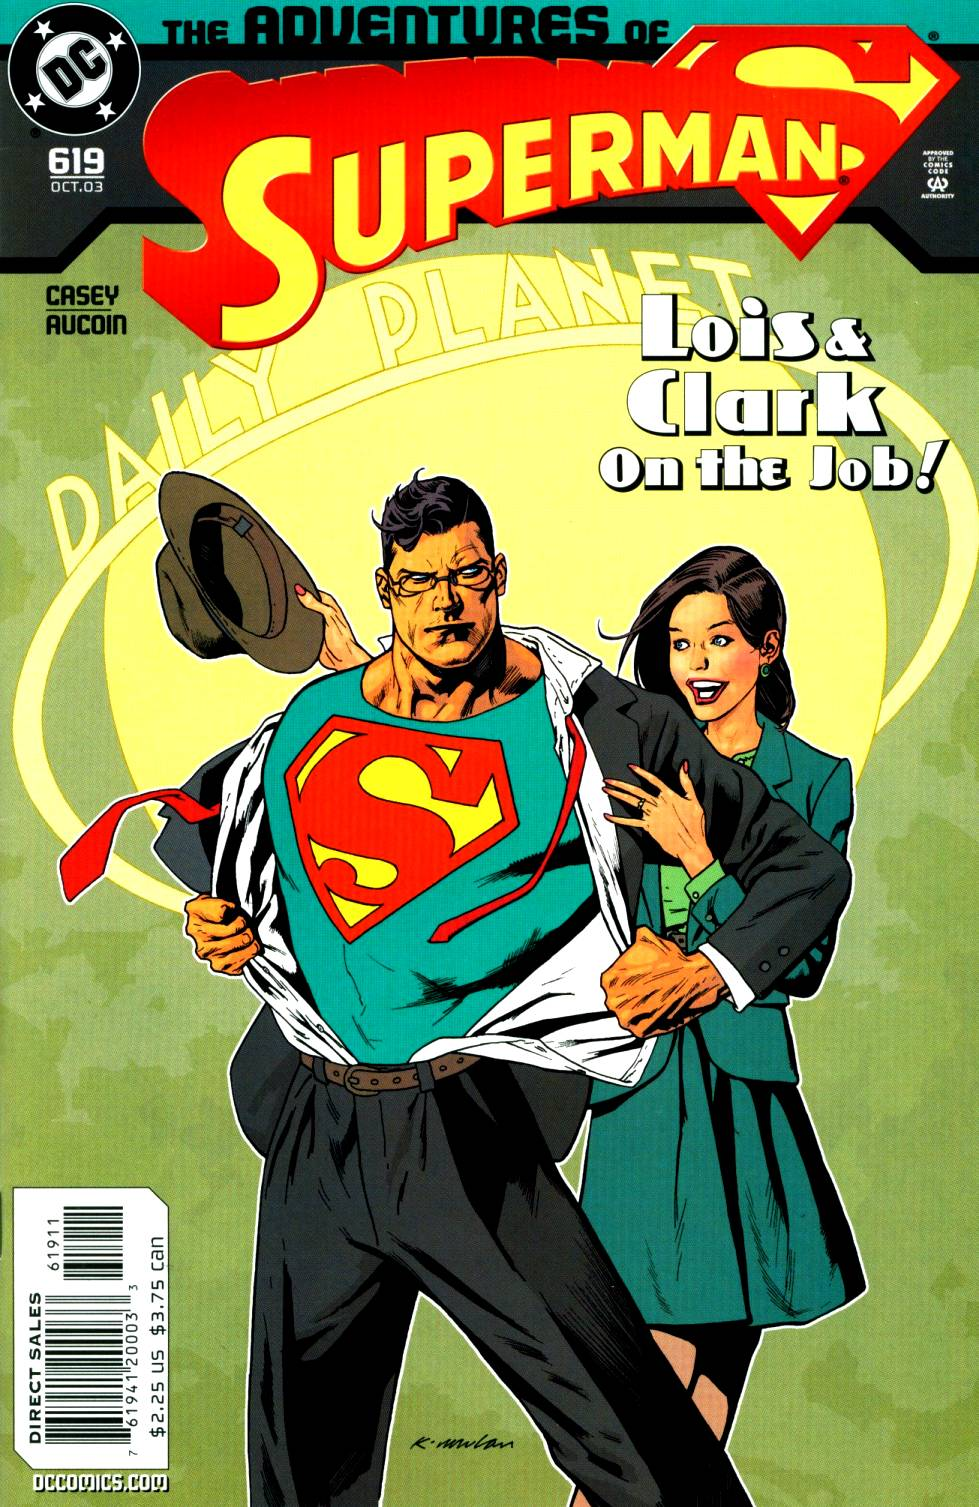 Read online Adventures of Superman (1987) comic -  Issue #619 - 1